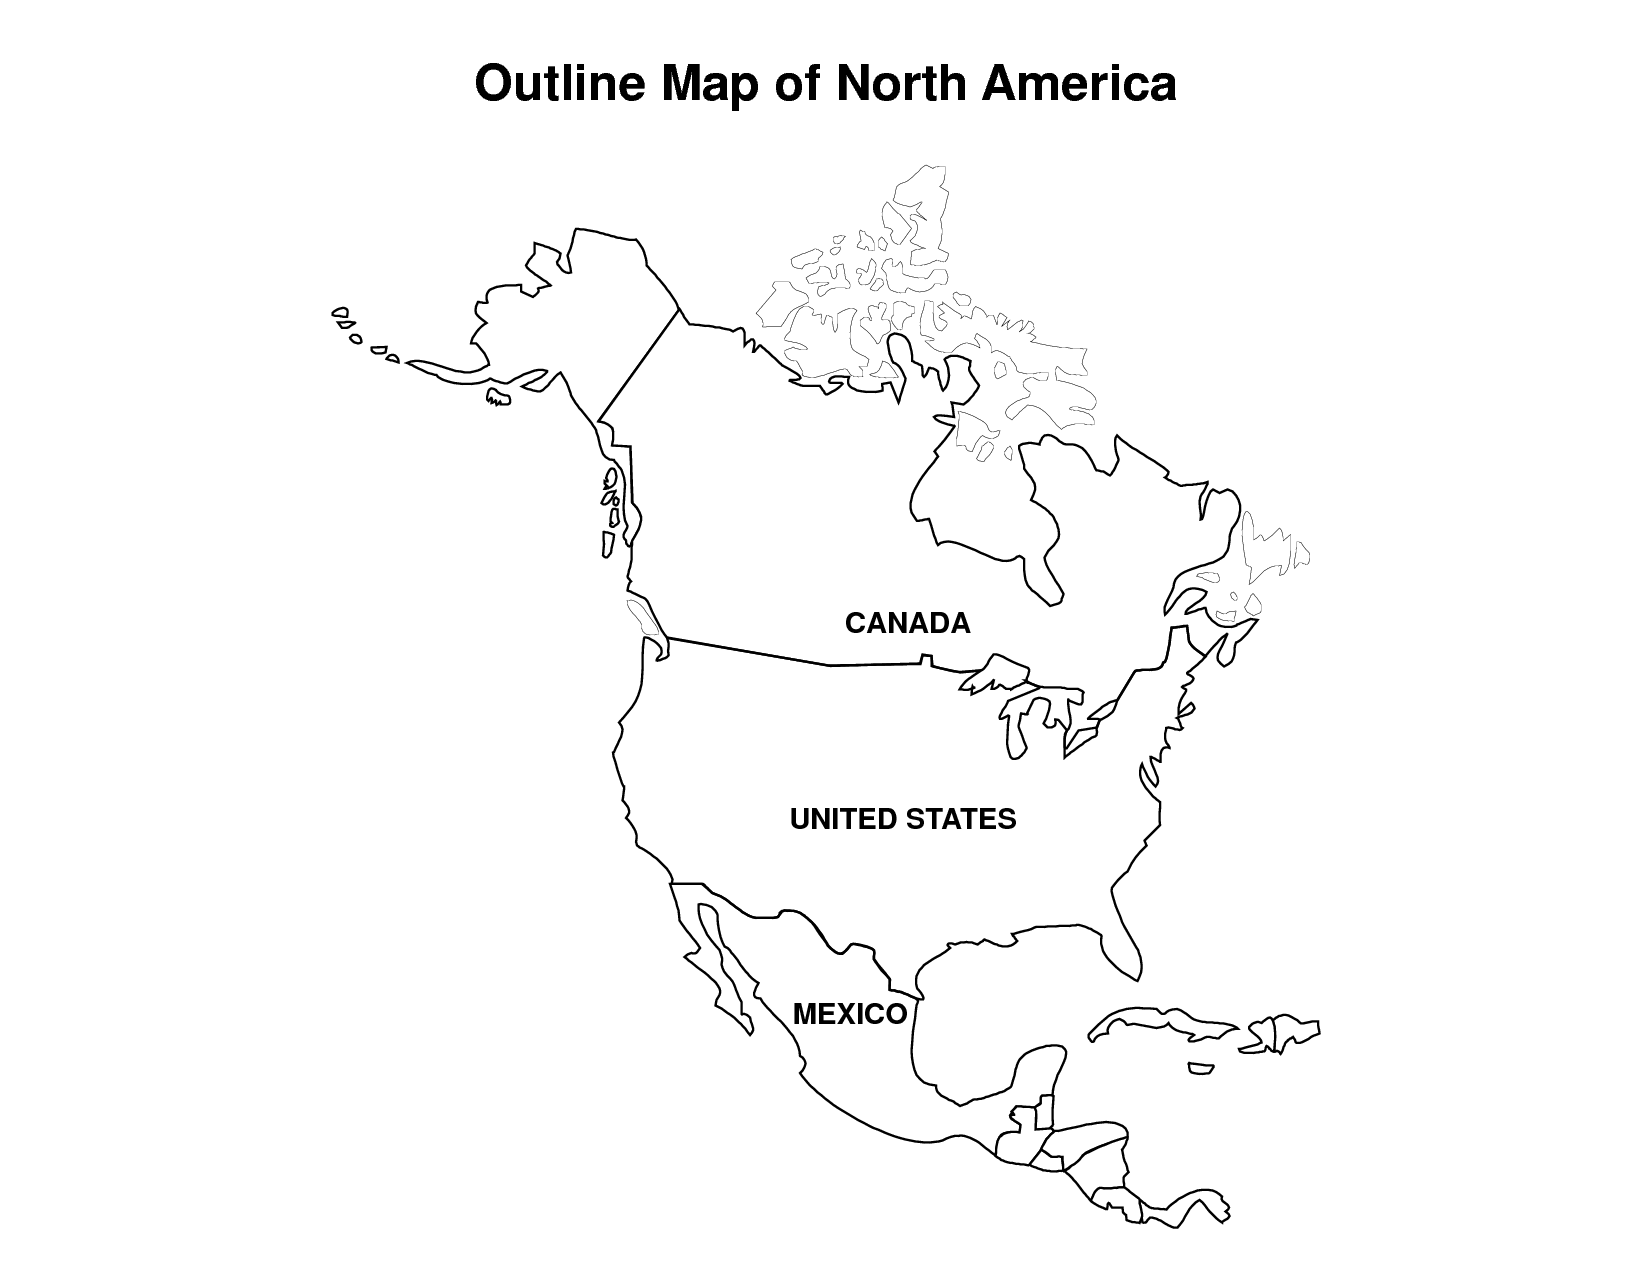 Image north america northwest map clipart bw free.